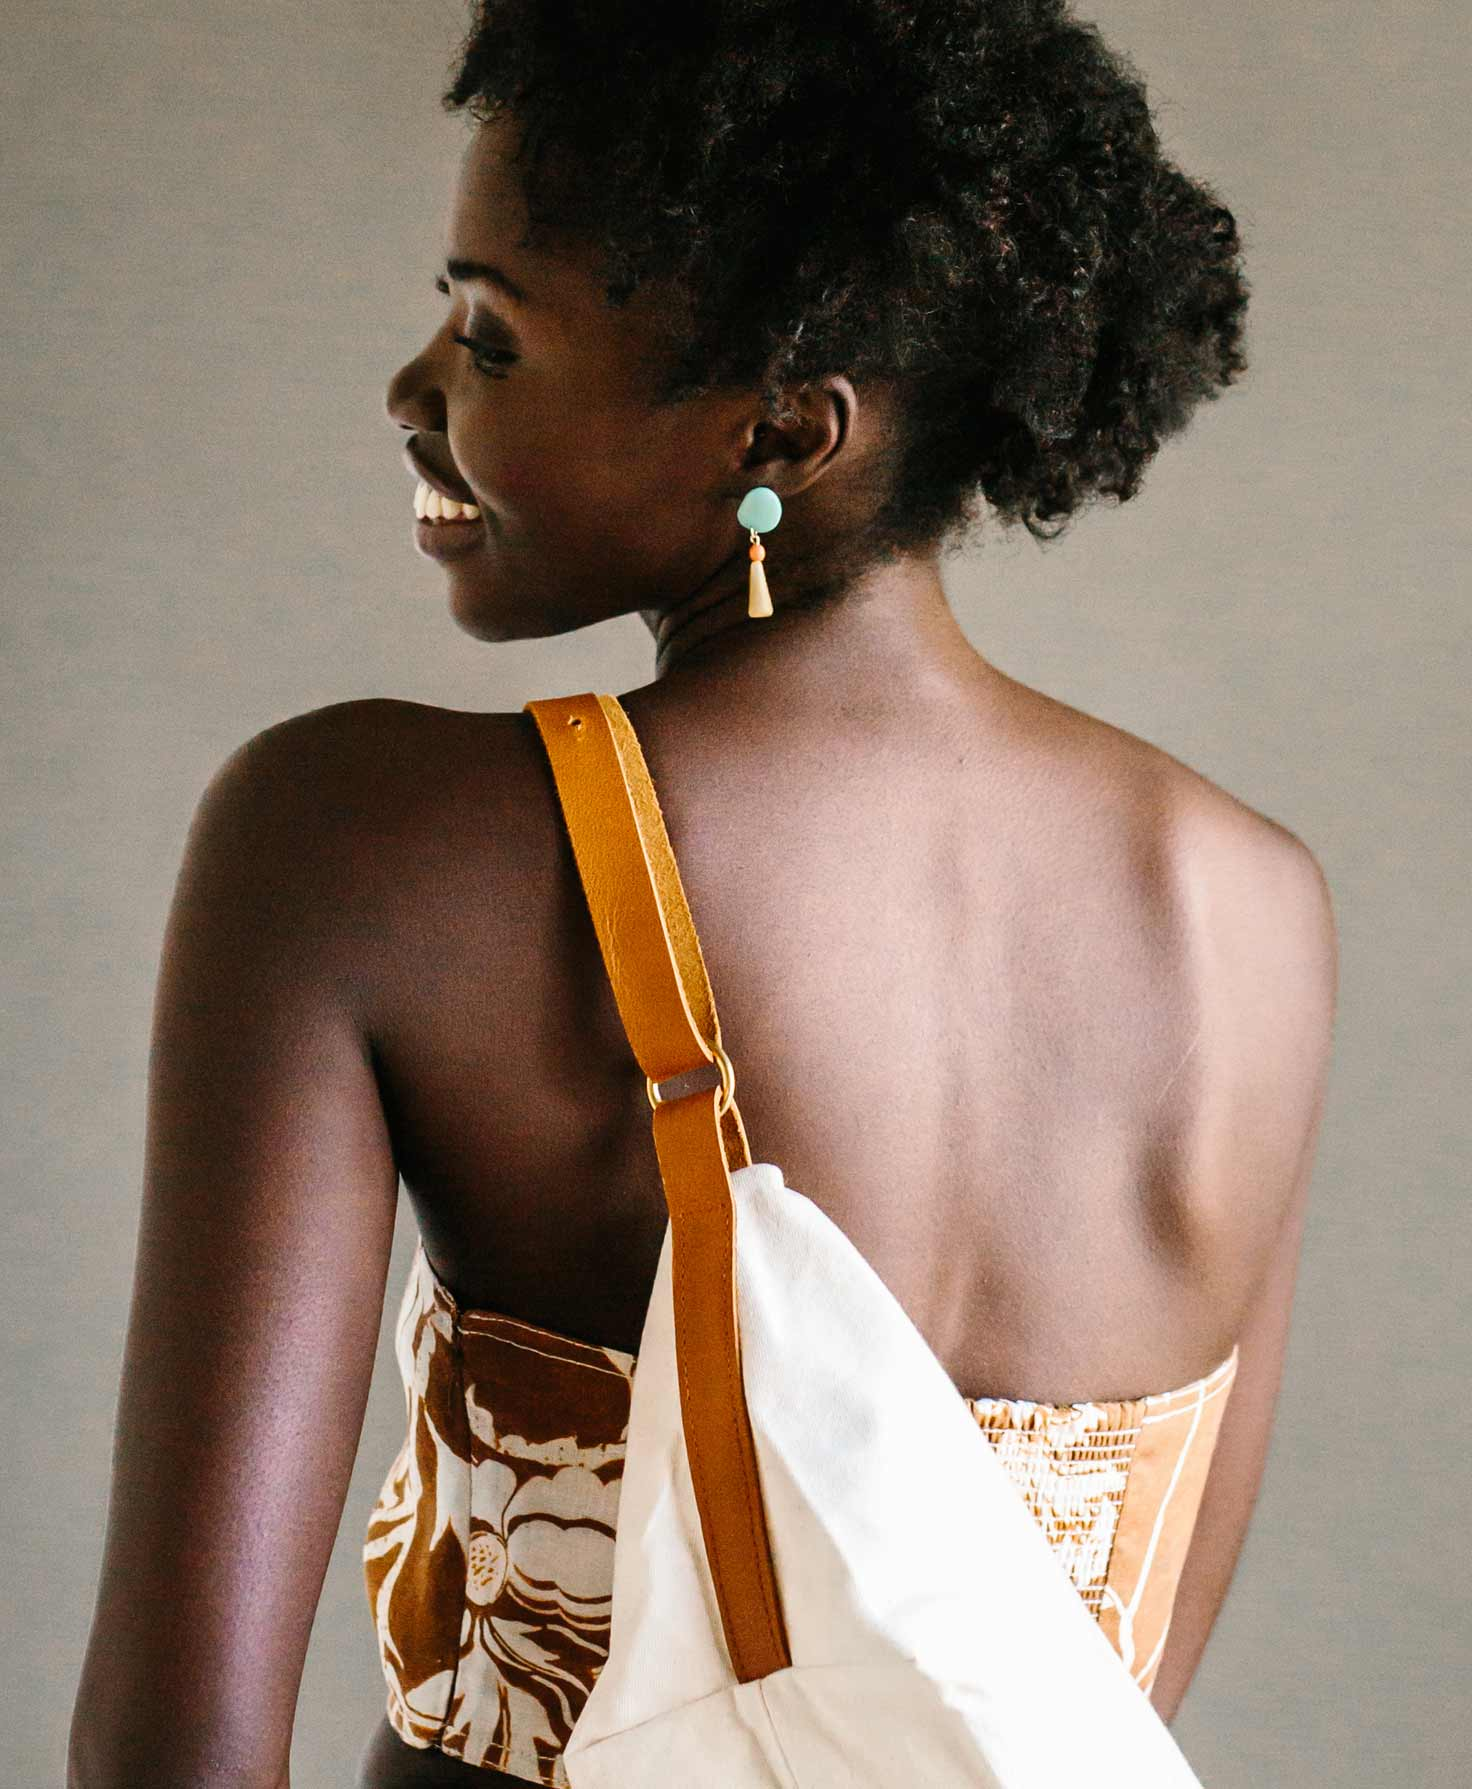 A model is shown with her back to the camera, her face turned to the side. She wears the Delphin Drop Earrings and has the Skipper Sling Bag slung over her shoulder.